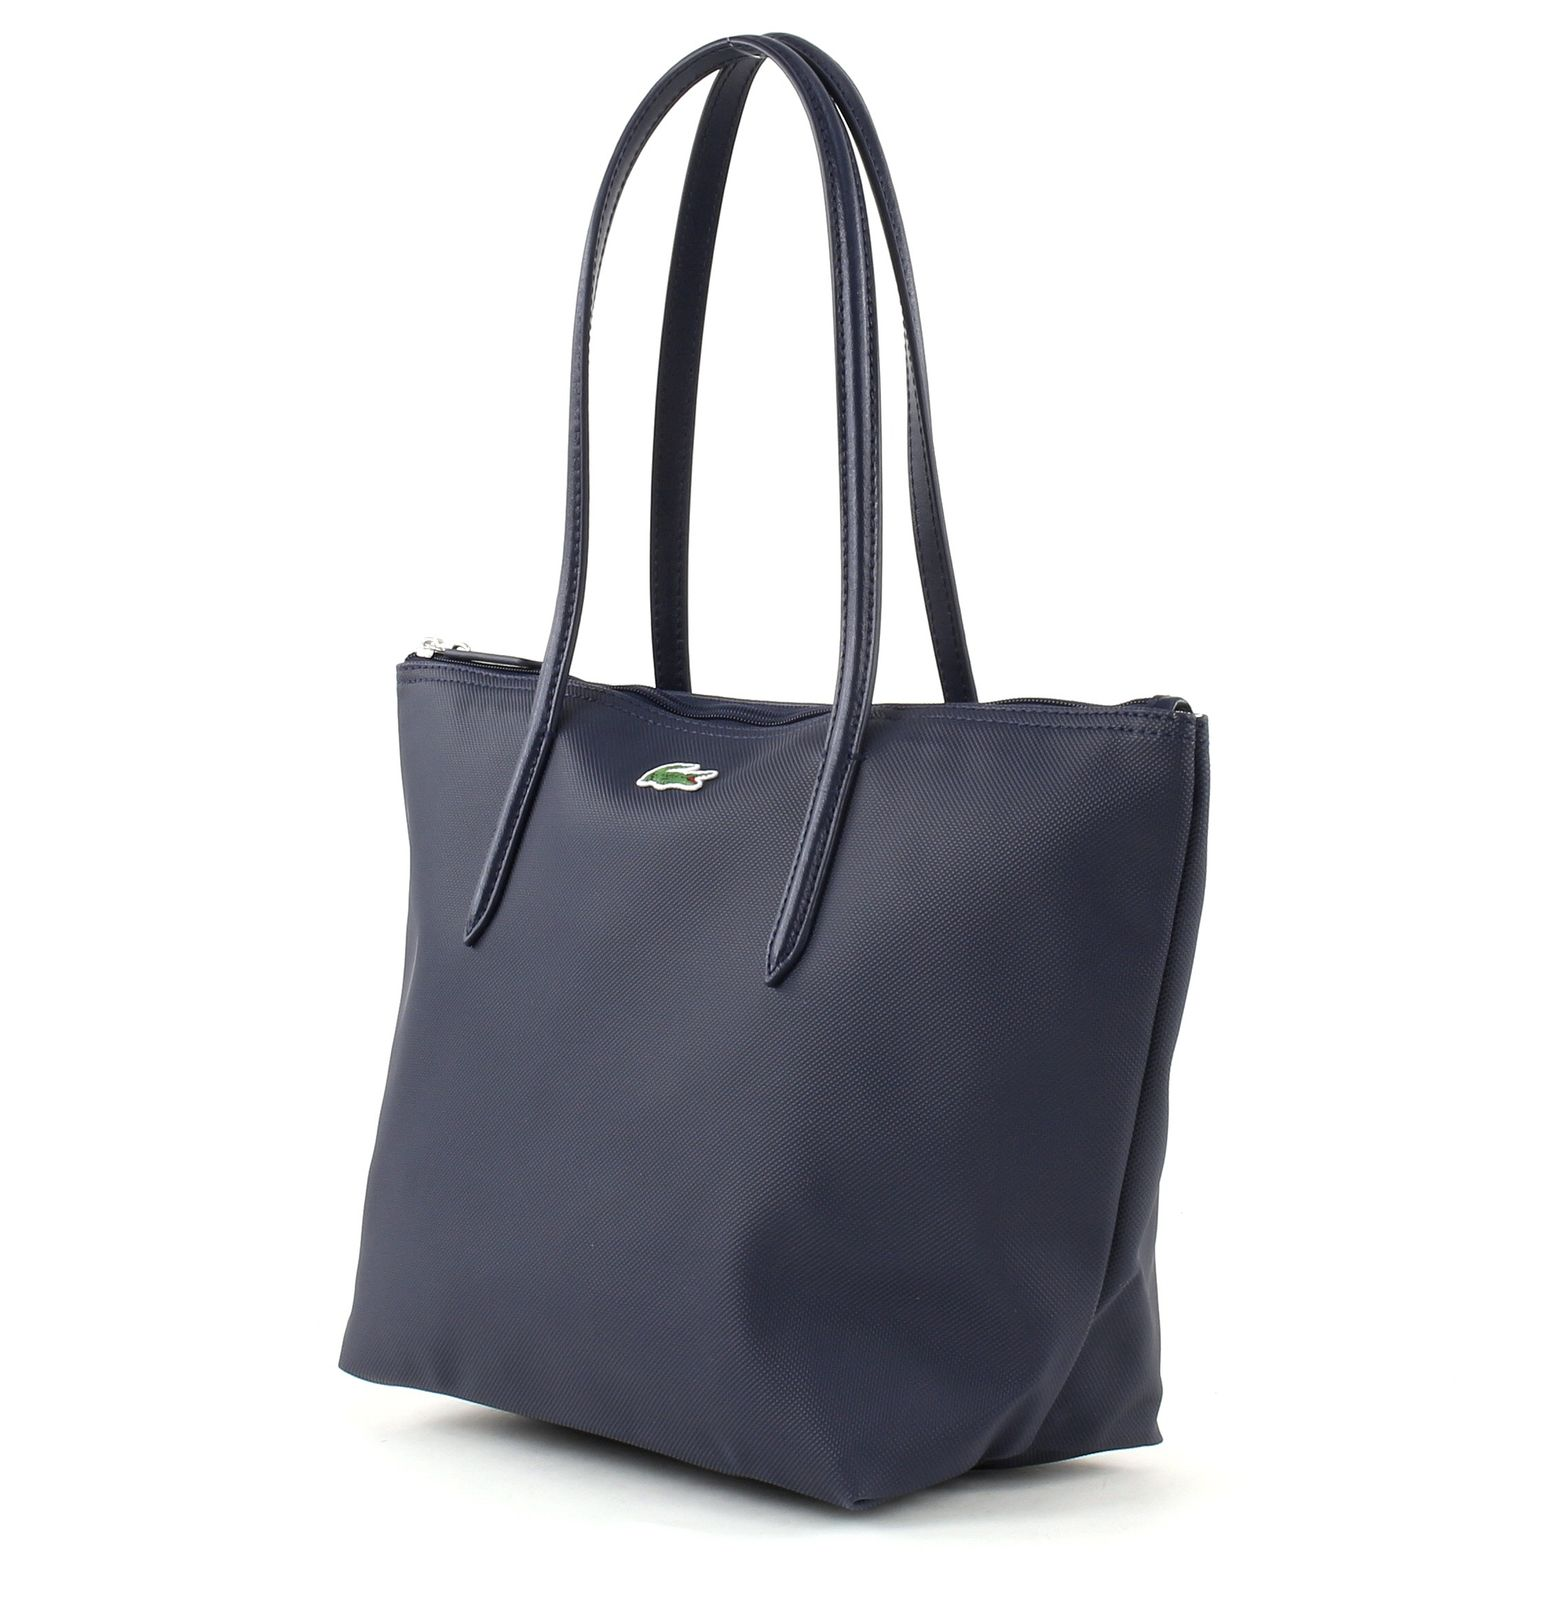 ... CloseLACOSTE L.12.12 Concept S Shopping Bag Eclipse   89 d7282a2ed2d